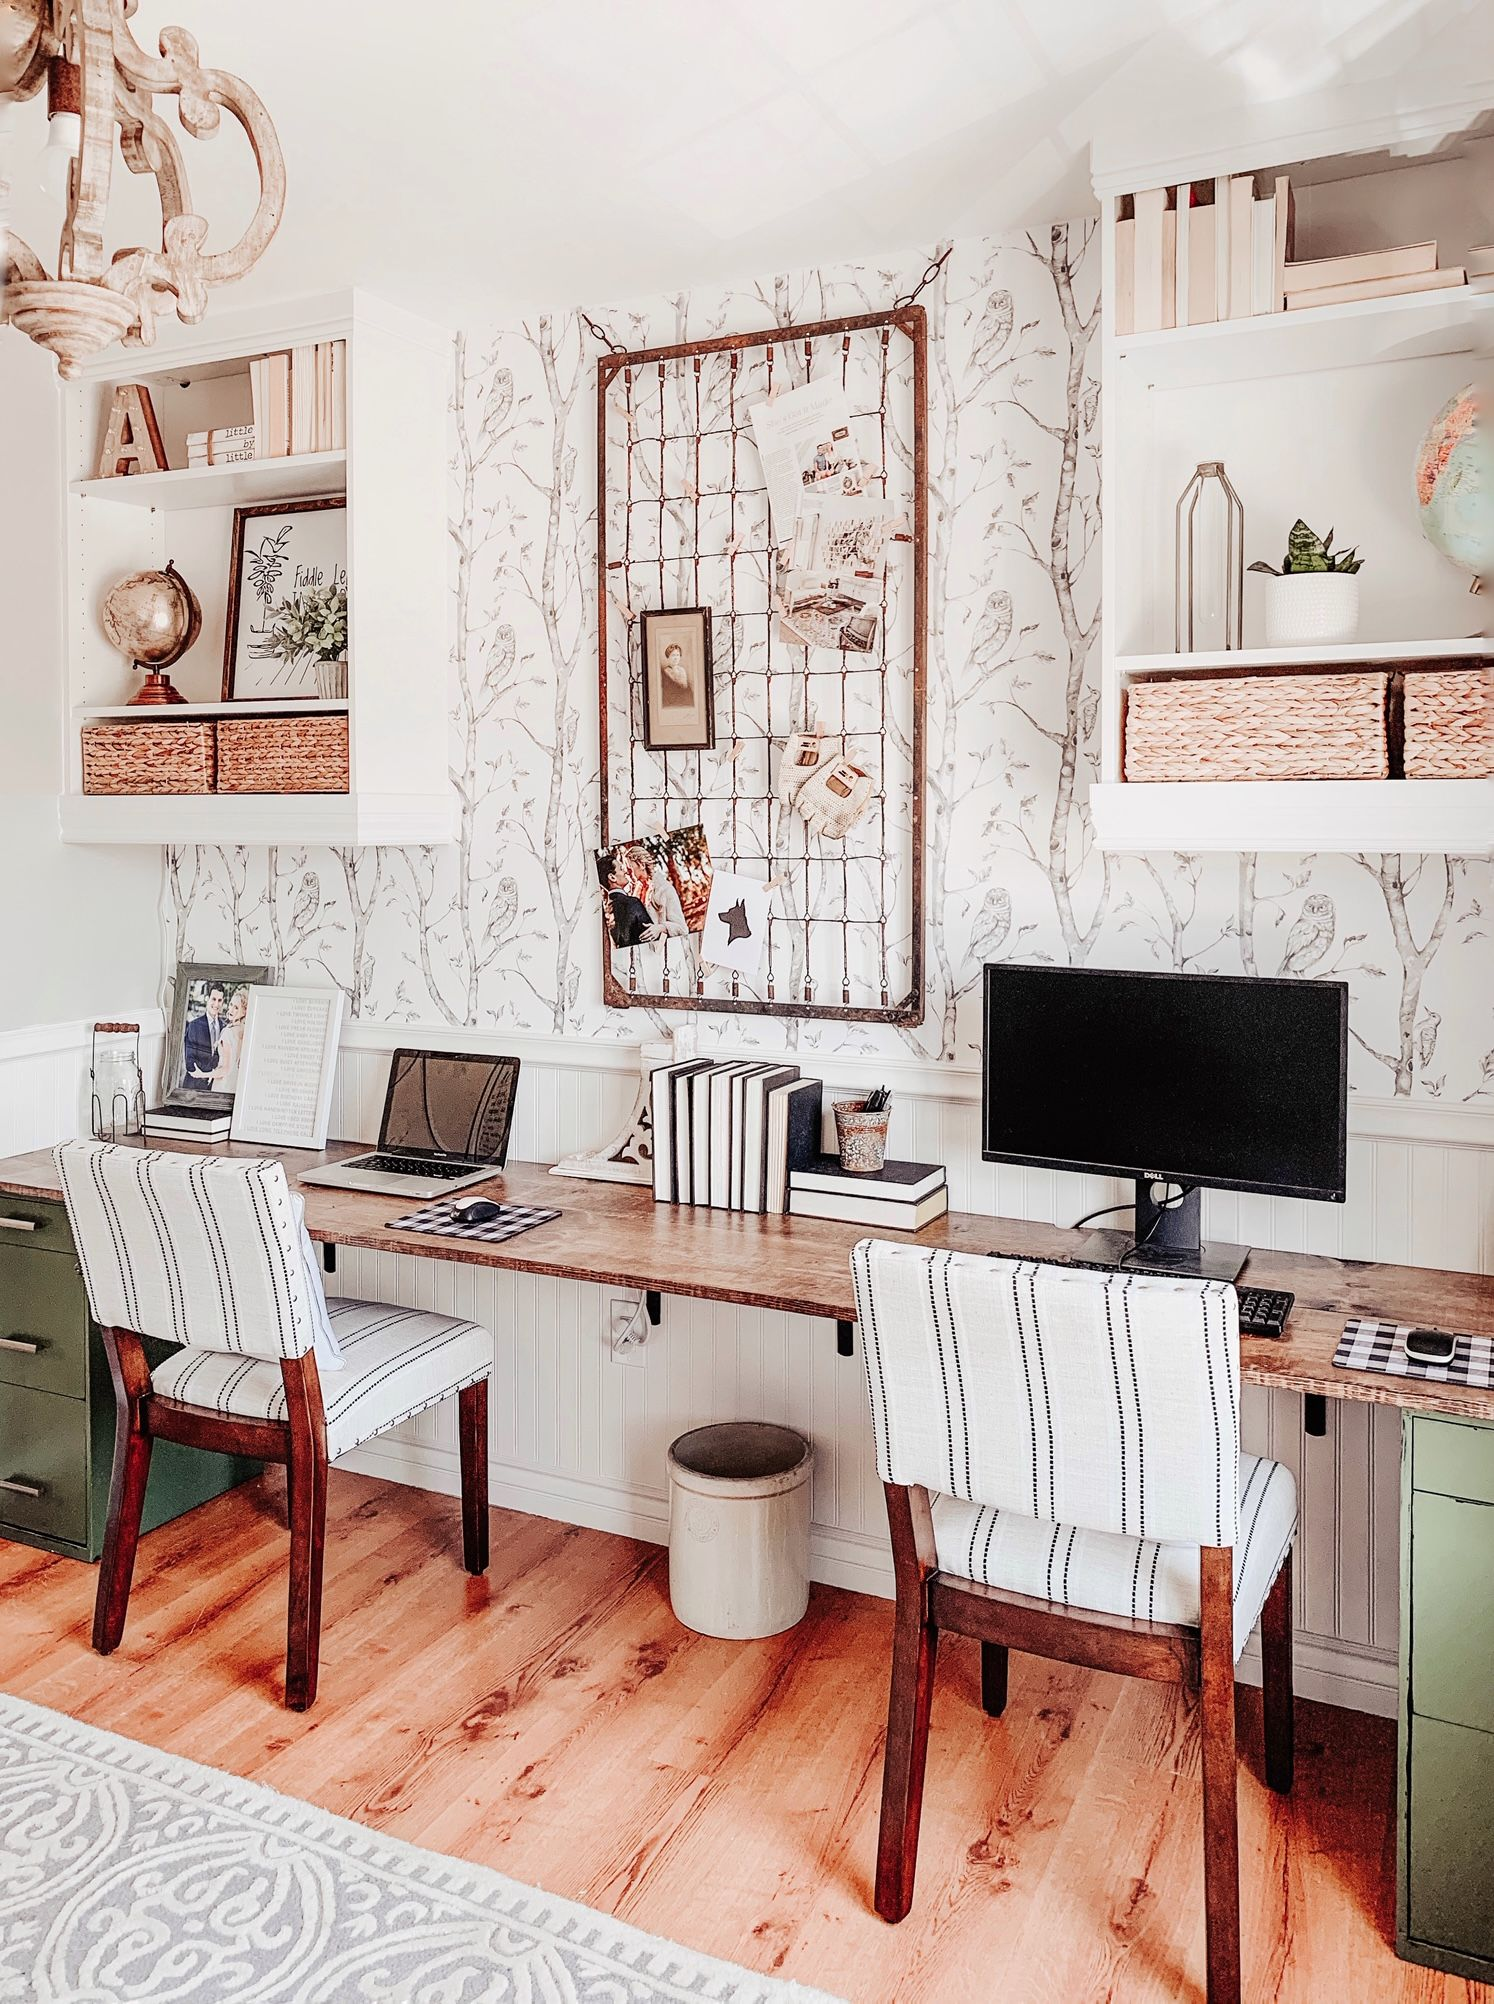 29 DIY Home Office Decor Ideas - Best Home Office Decor Projects